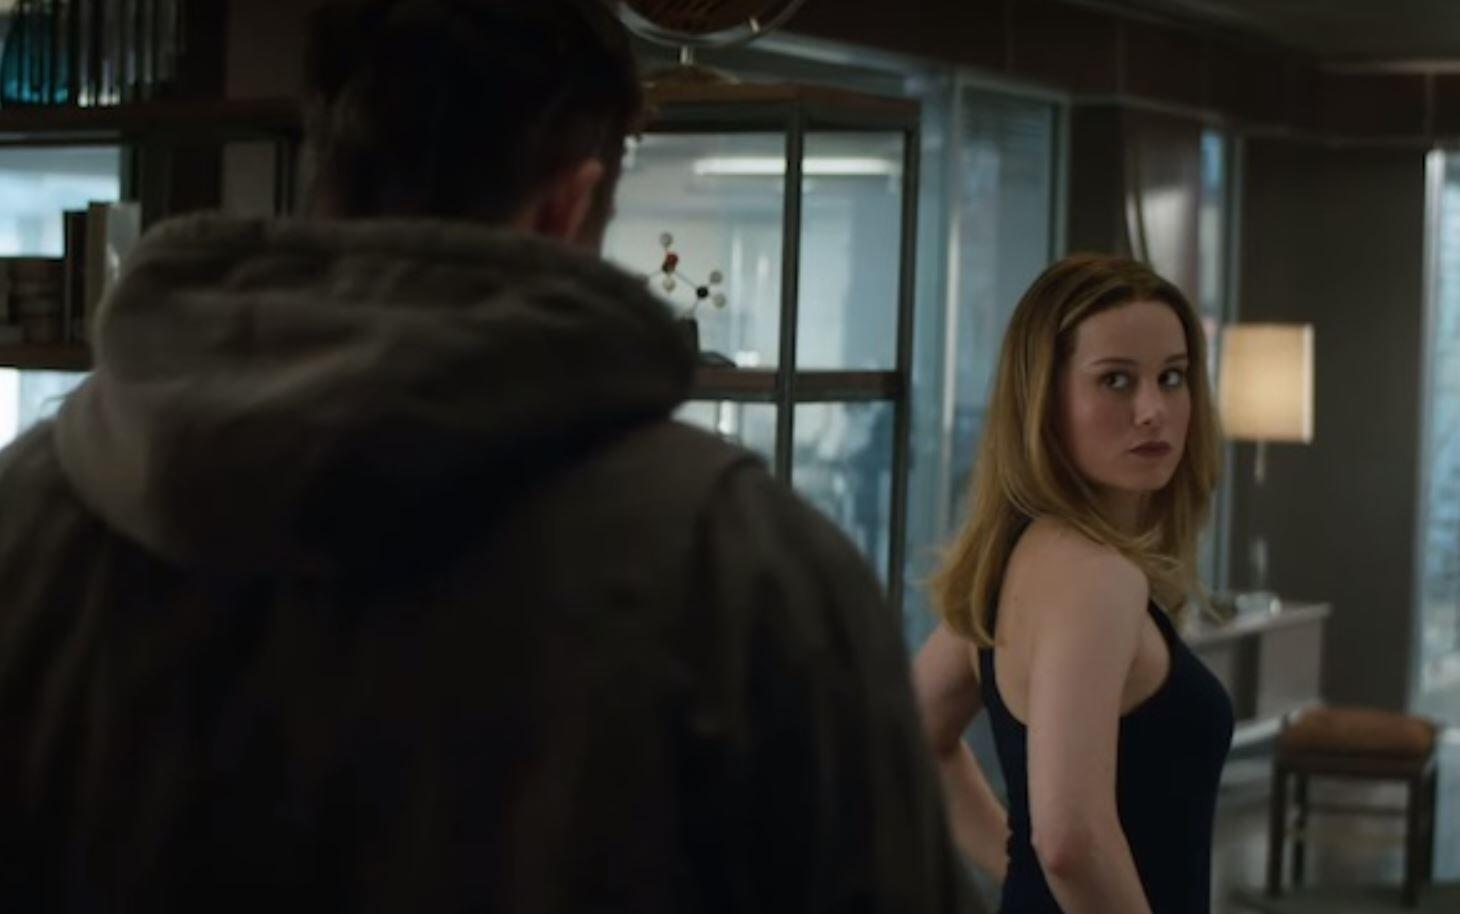 captain marvel meets thor in new 'avengers: endgame' footage